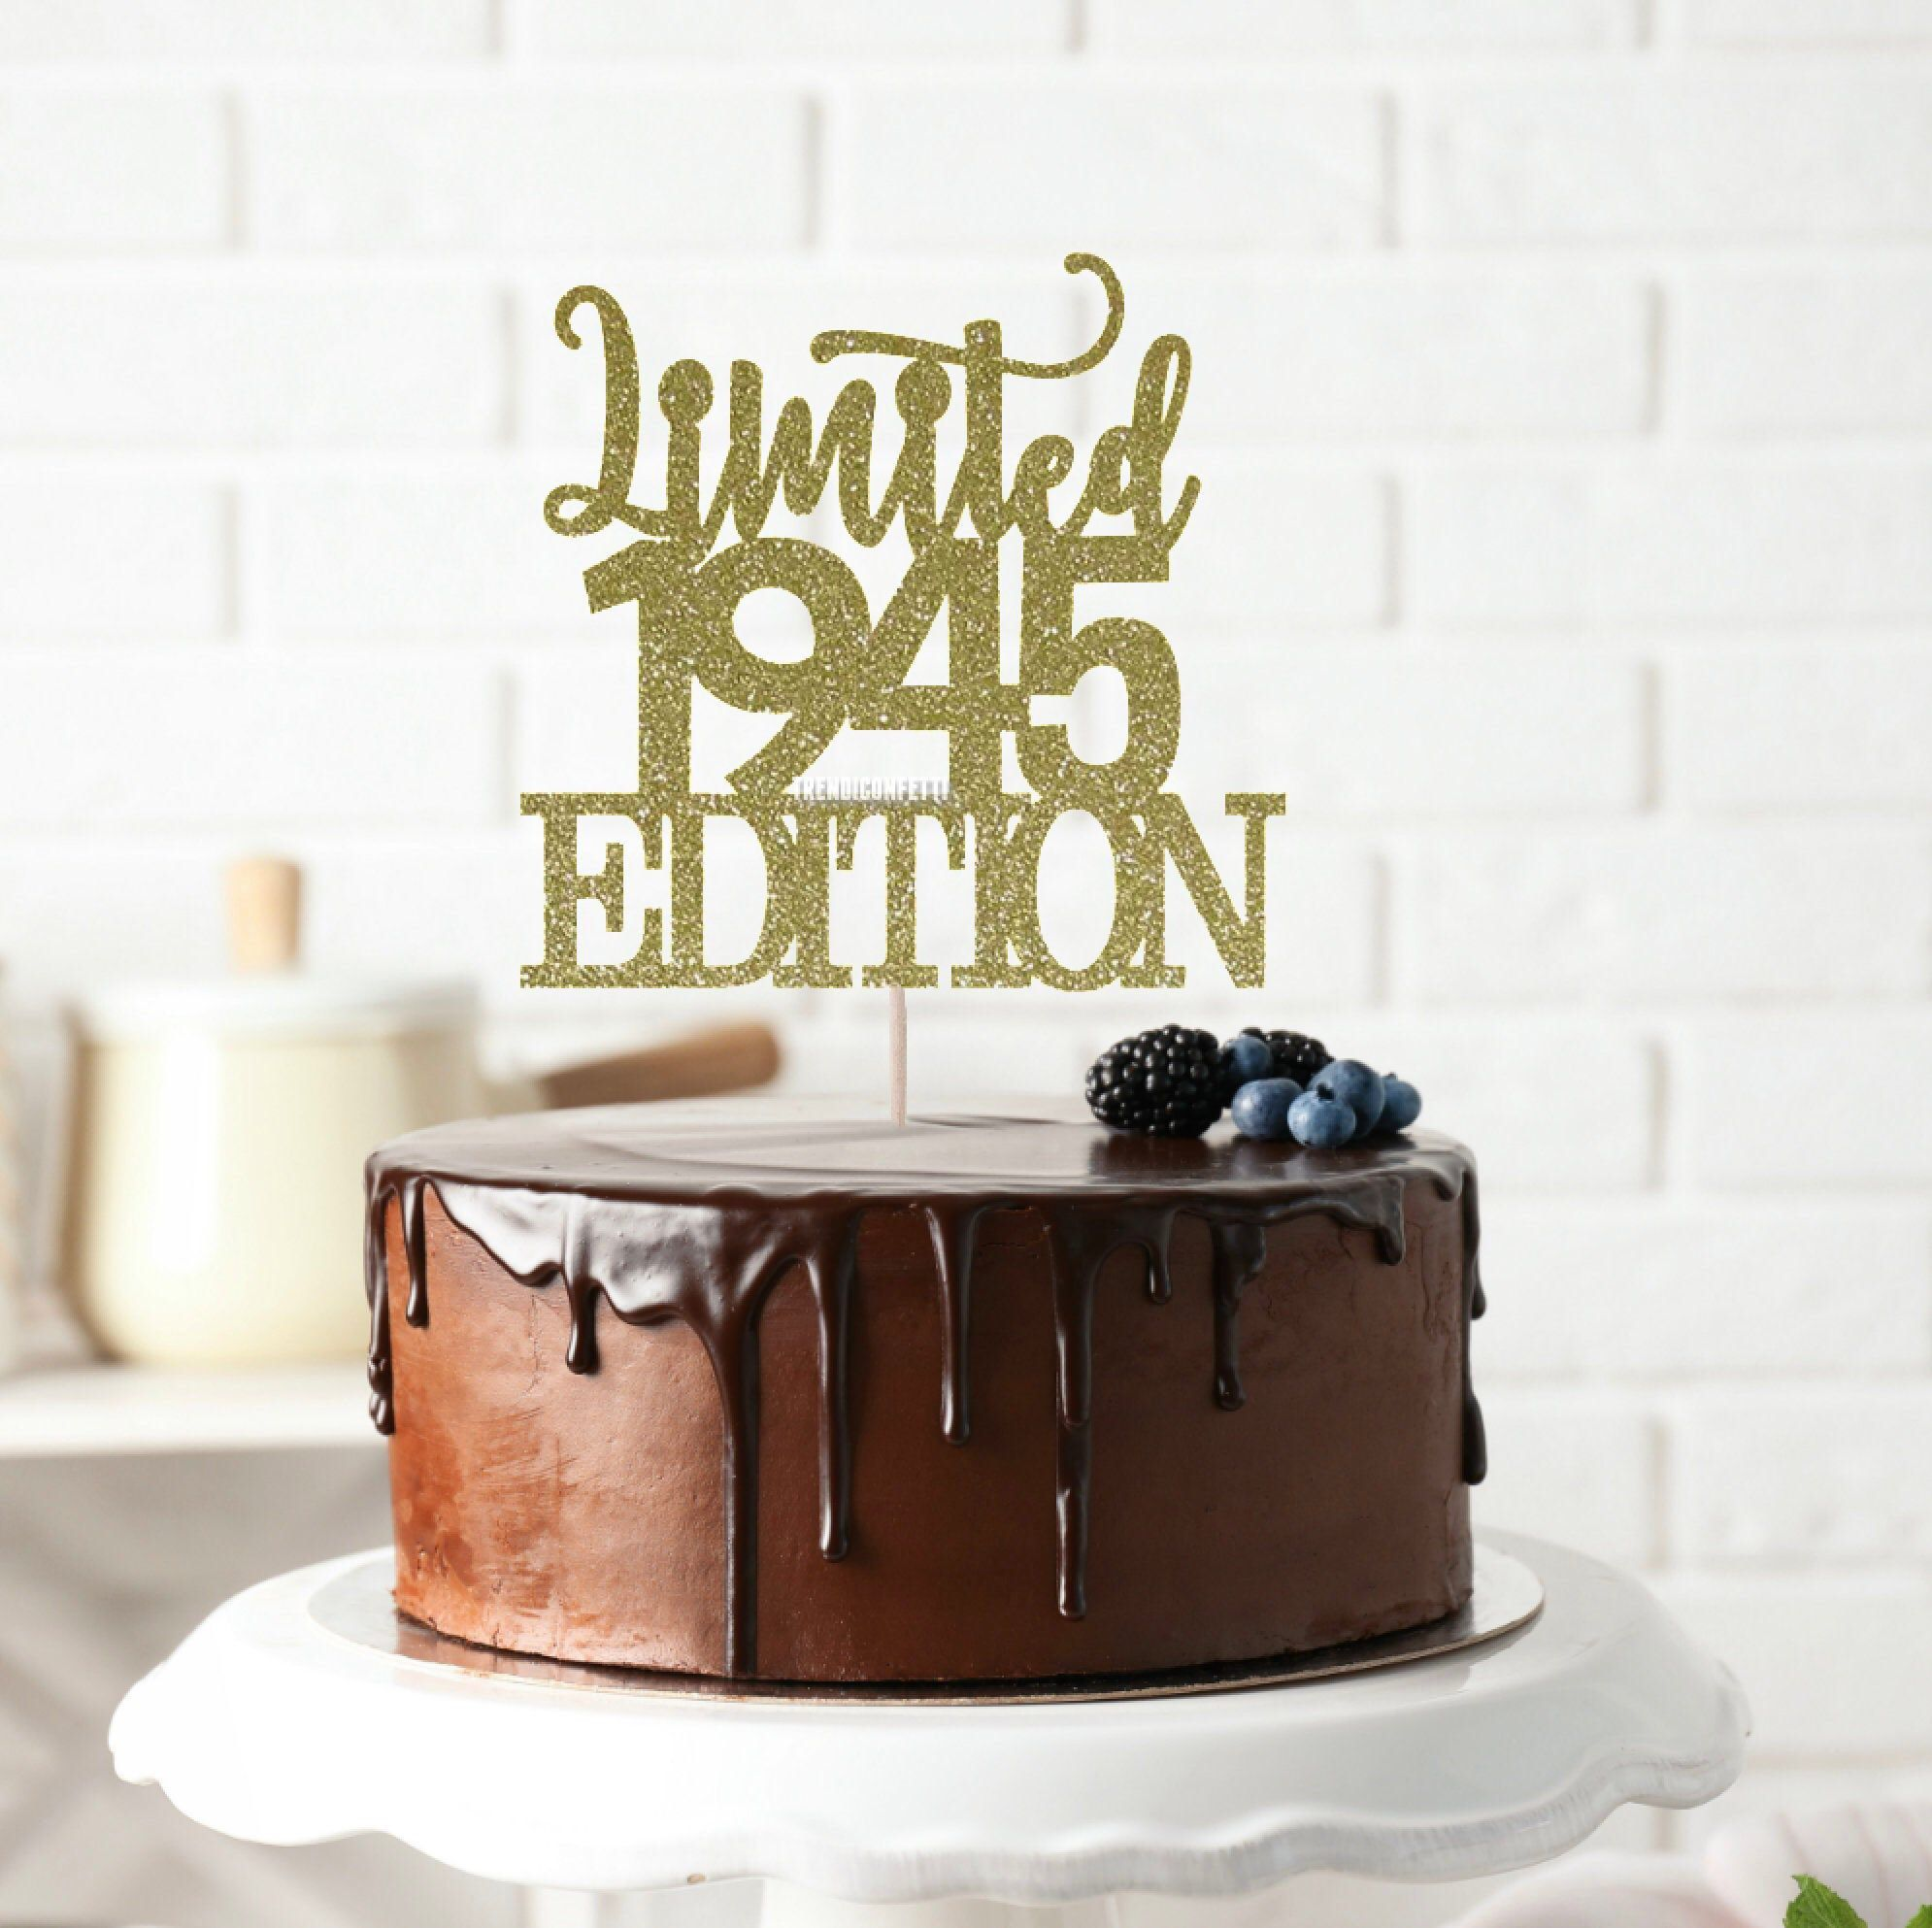 Limited 1945 Edition Cake Topper Birth Year Cake Topper 75th